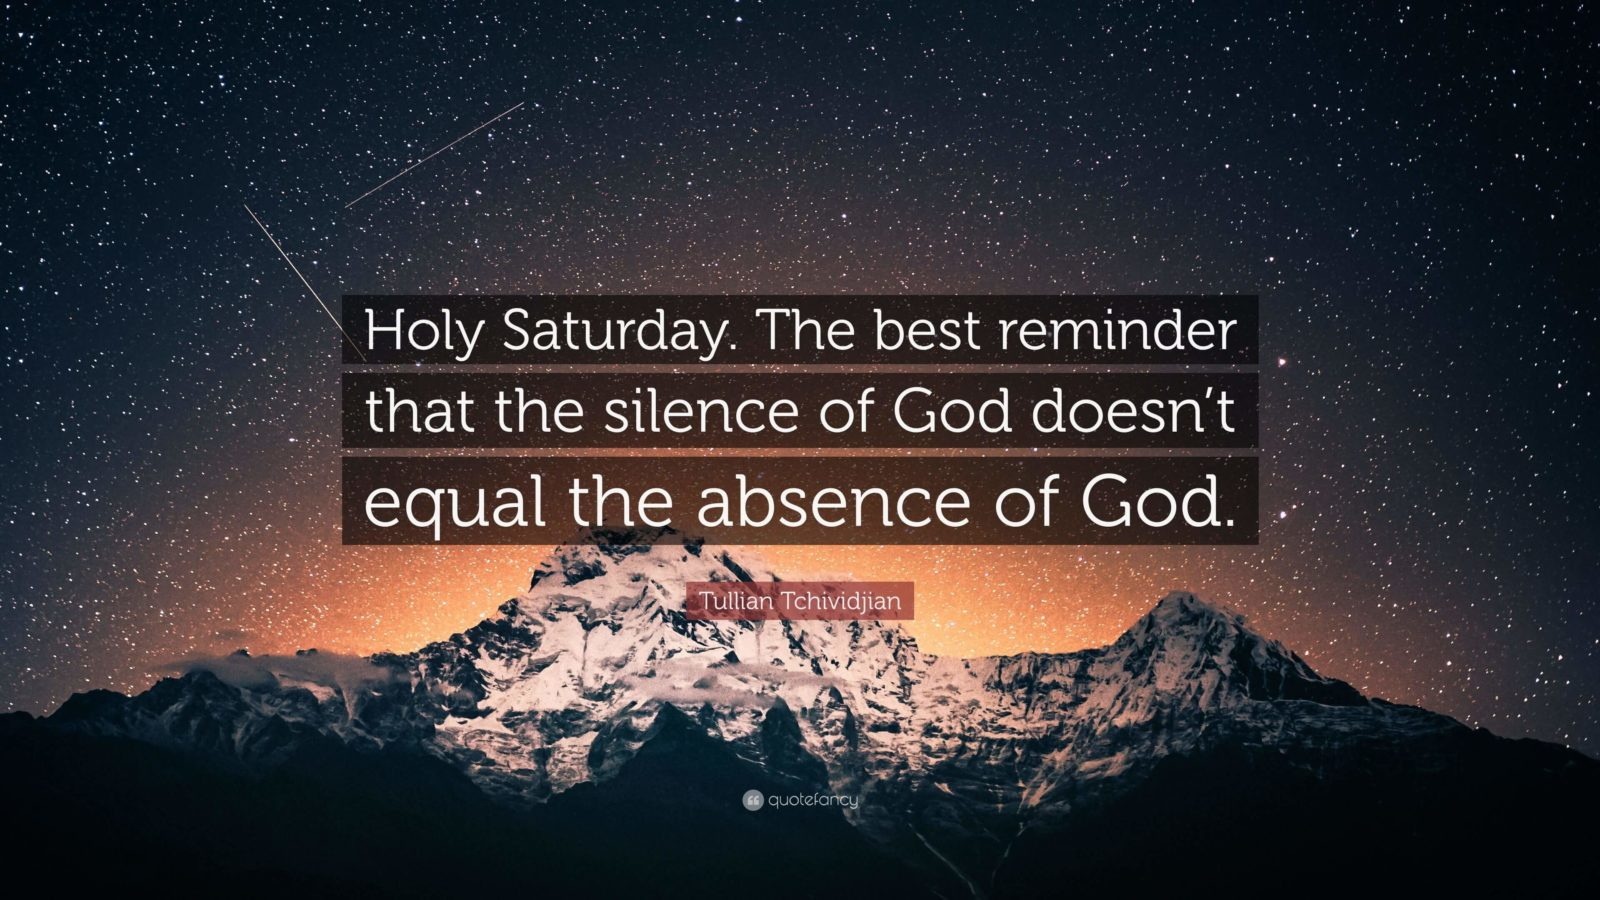 Holy Saturday 2018 Quotes Messages Images (43)